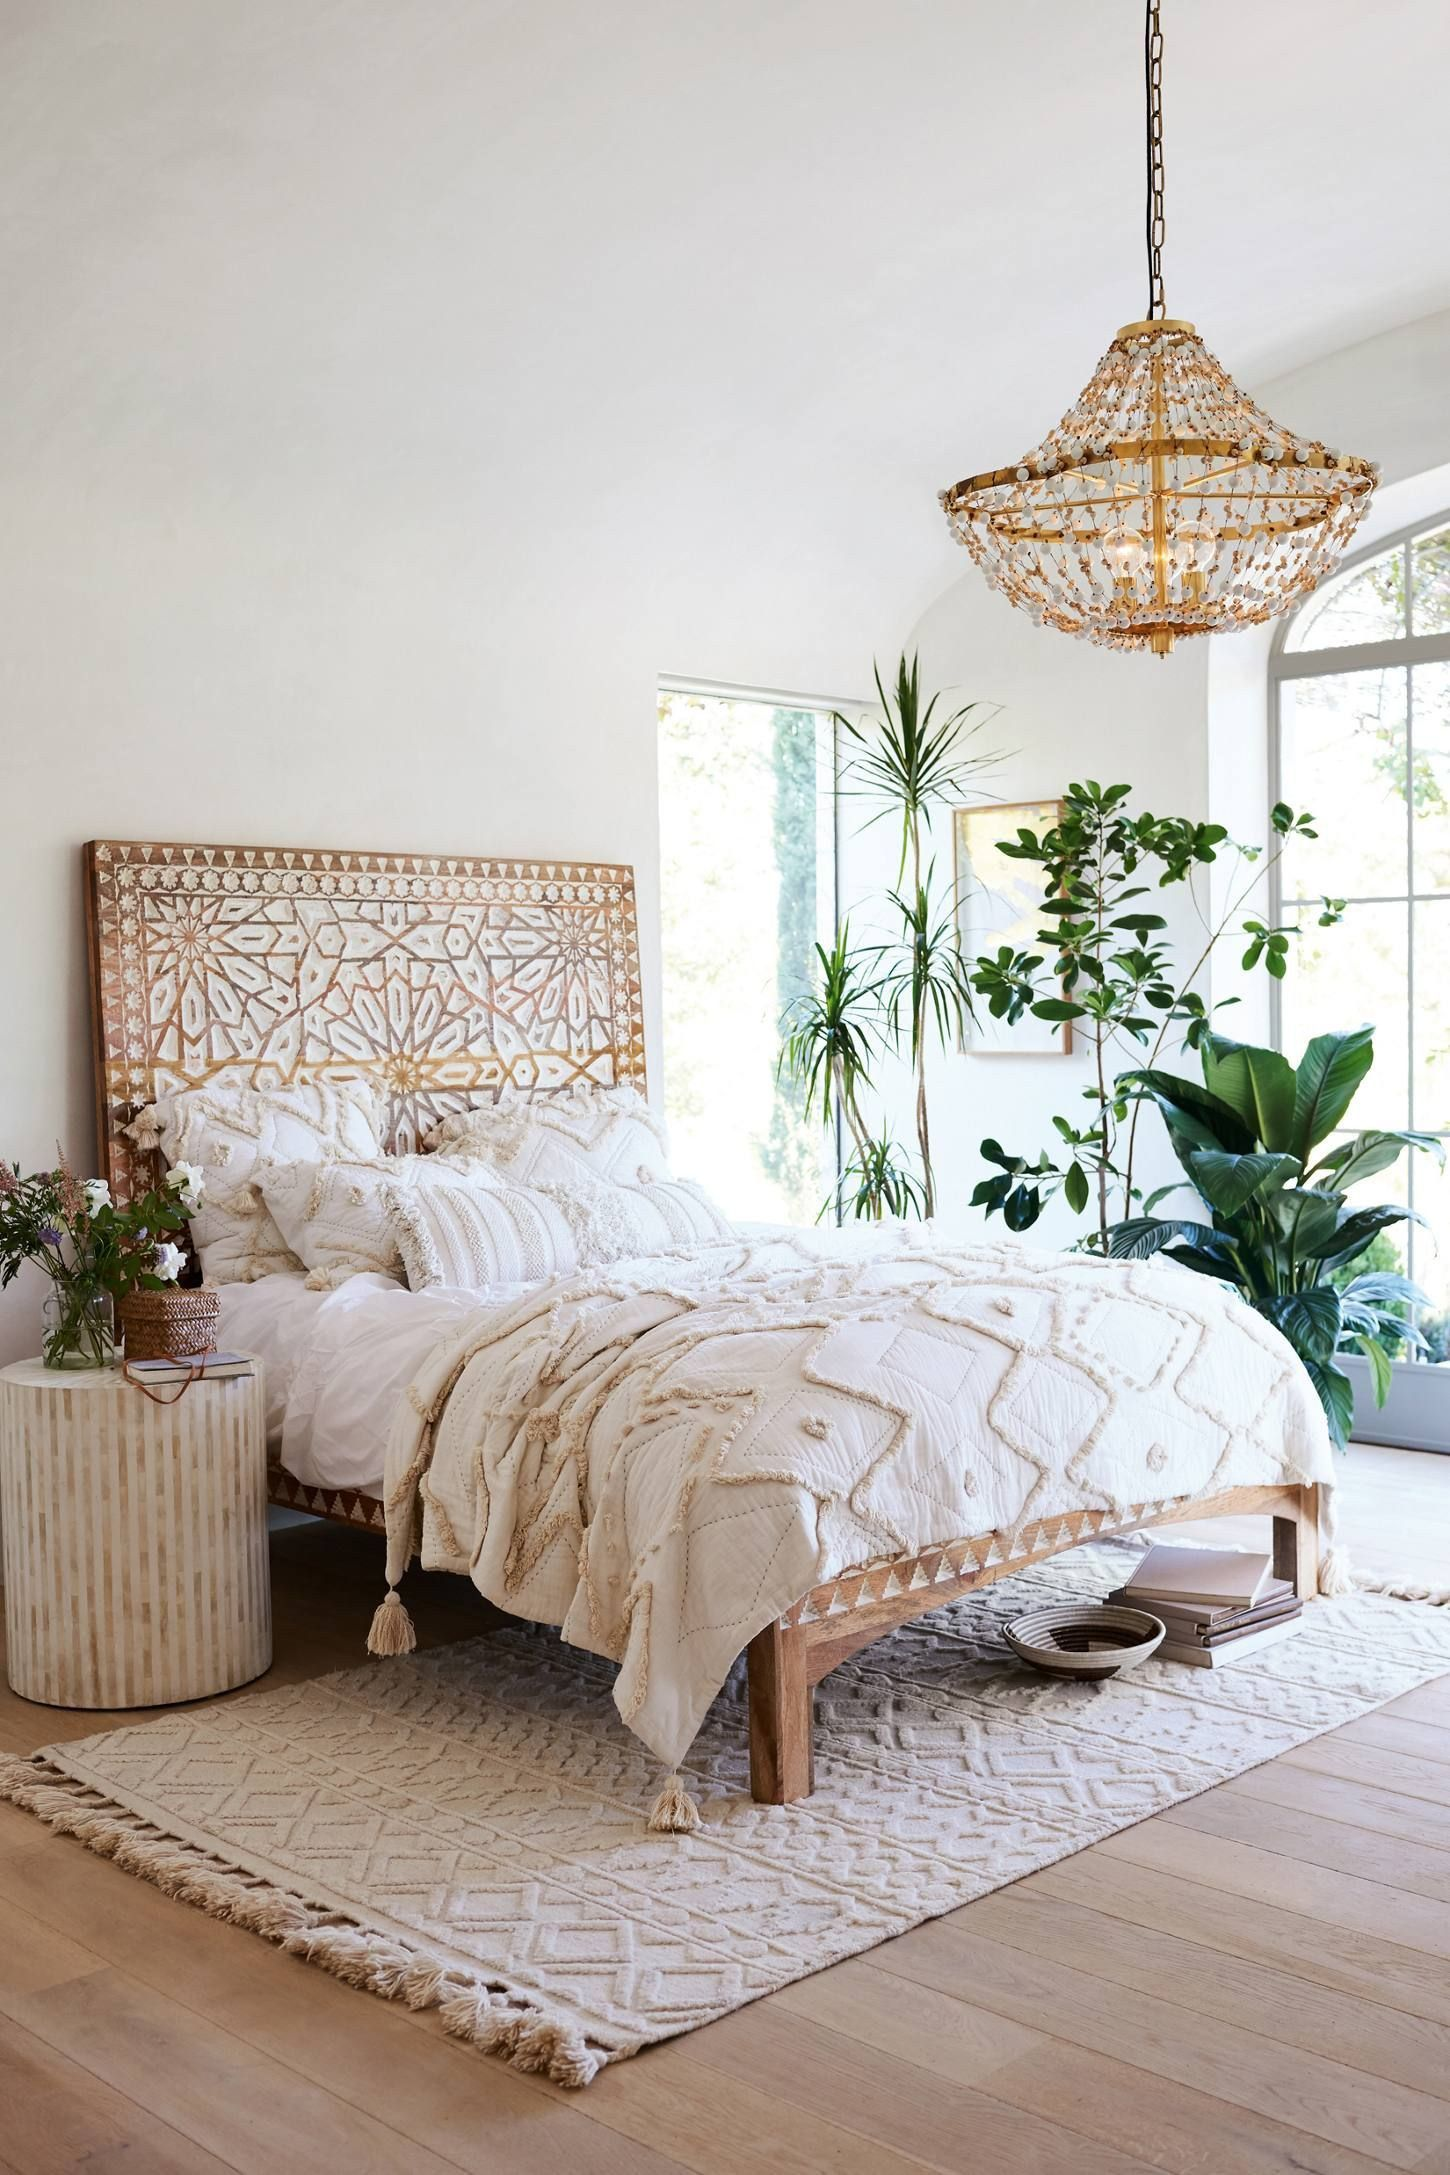 Bedroom Decor. Many Of The Bedroom Design And Style Ideas Youu0027ll Ever Need.  Find Your Personal Style To Create Your Fantasy Bedroom Whatever Your  Finances, ...